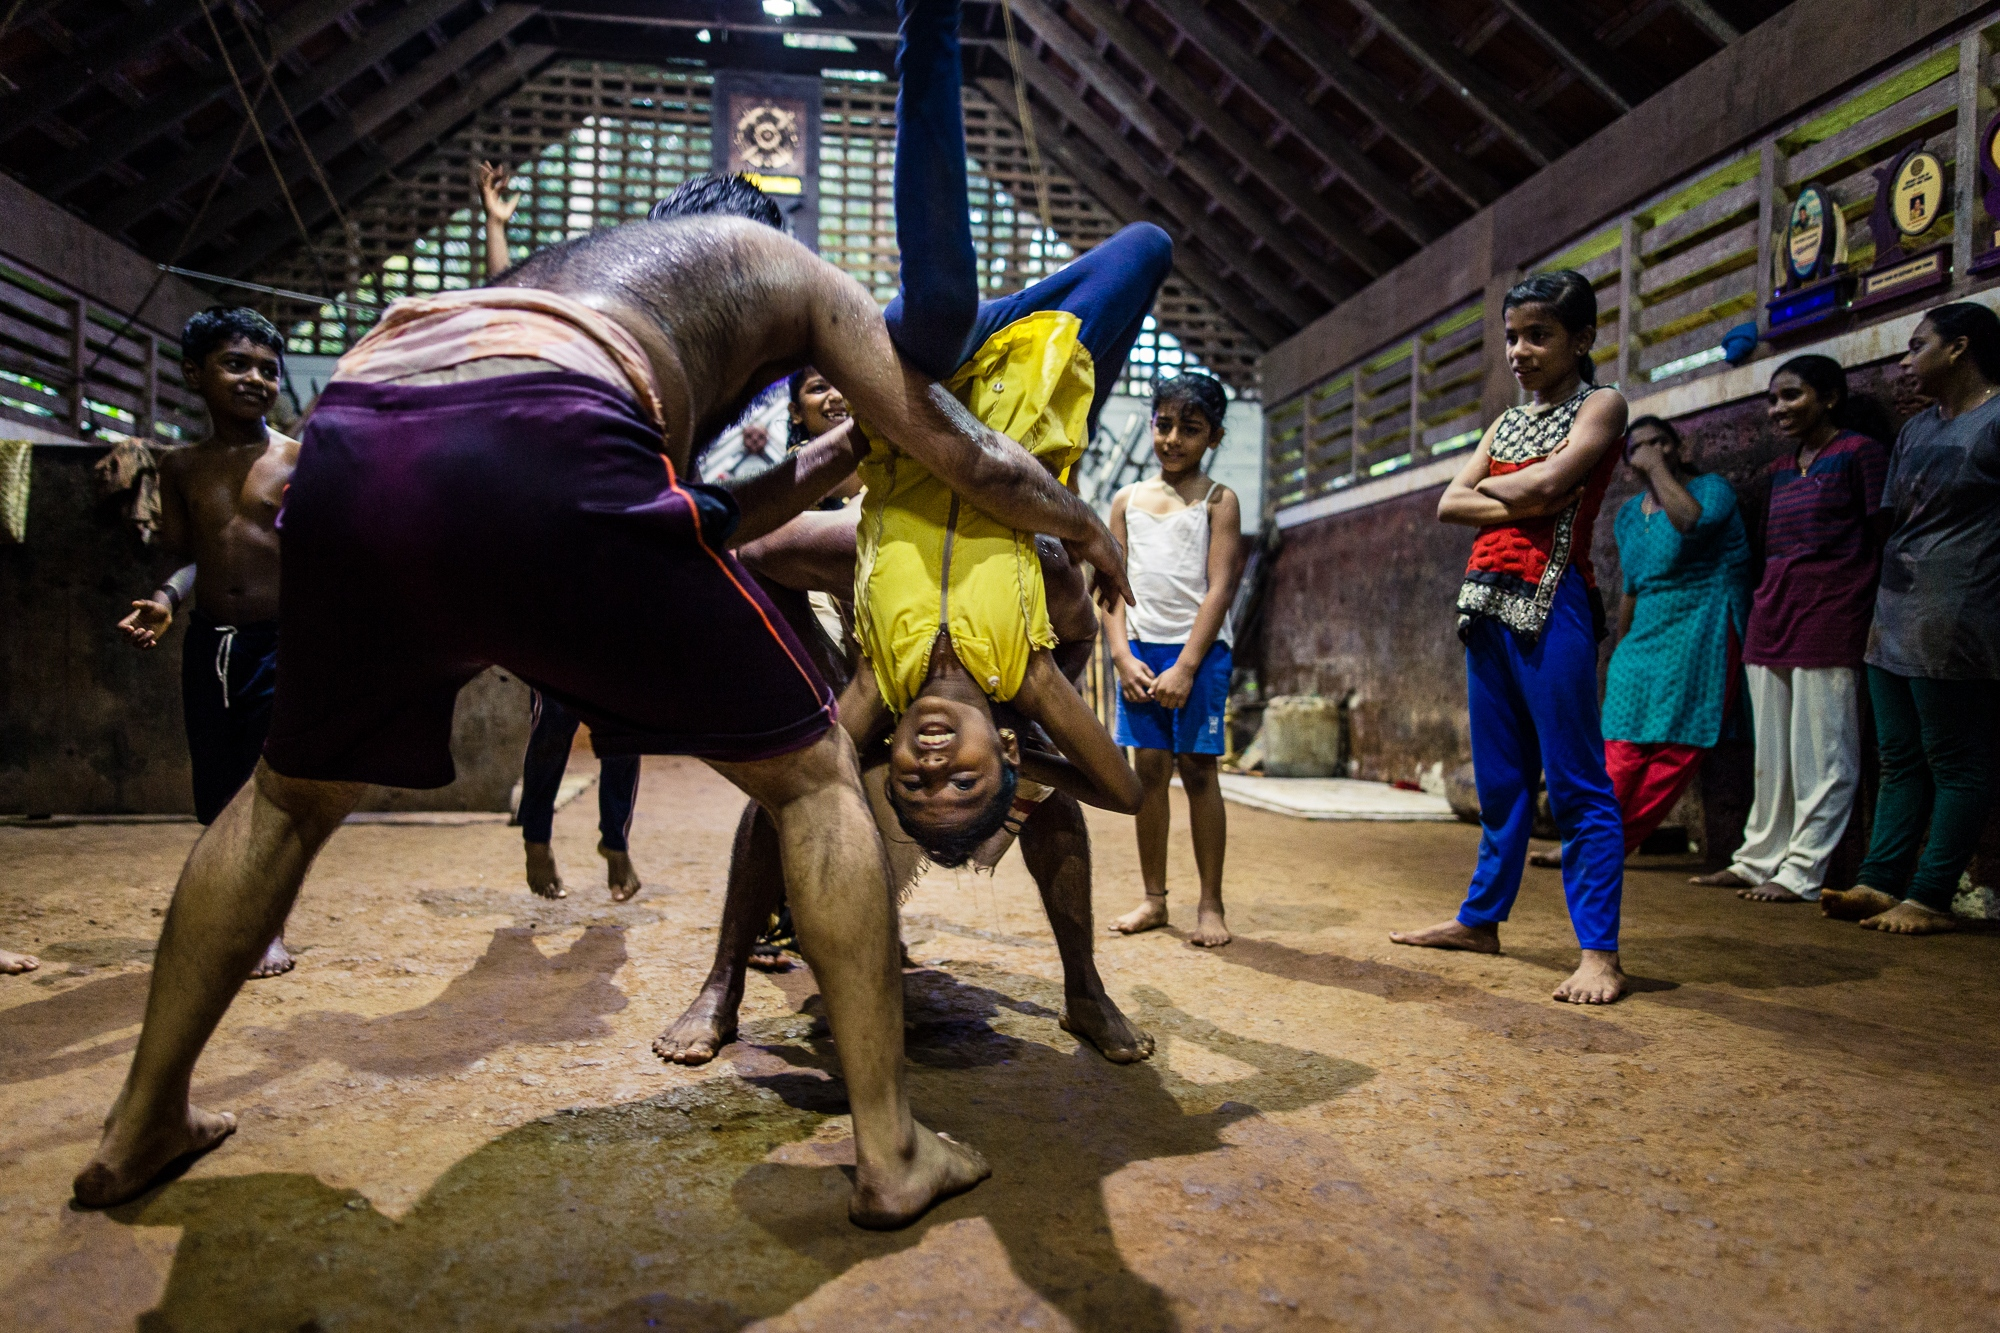 Vatakara, Kerala, INDIA - September 16, 2017: Female students practice how to escape from grips. Since several rape cases in India received extensive media coverage and triggered protests in 2012, more young women have begun training at the school and an increasing number of parents allow their girls to train Kalaripayattu. Nowadays, one third of Meenakshi's students are females aged between six and twenty-six.